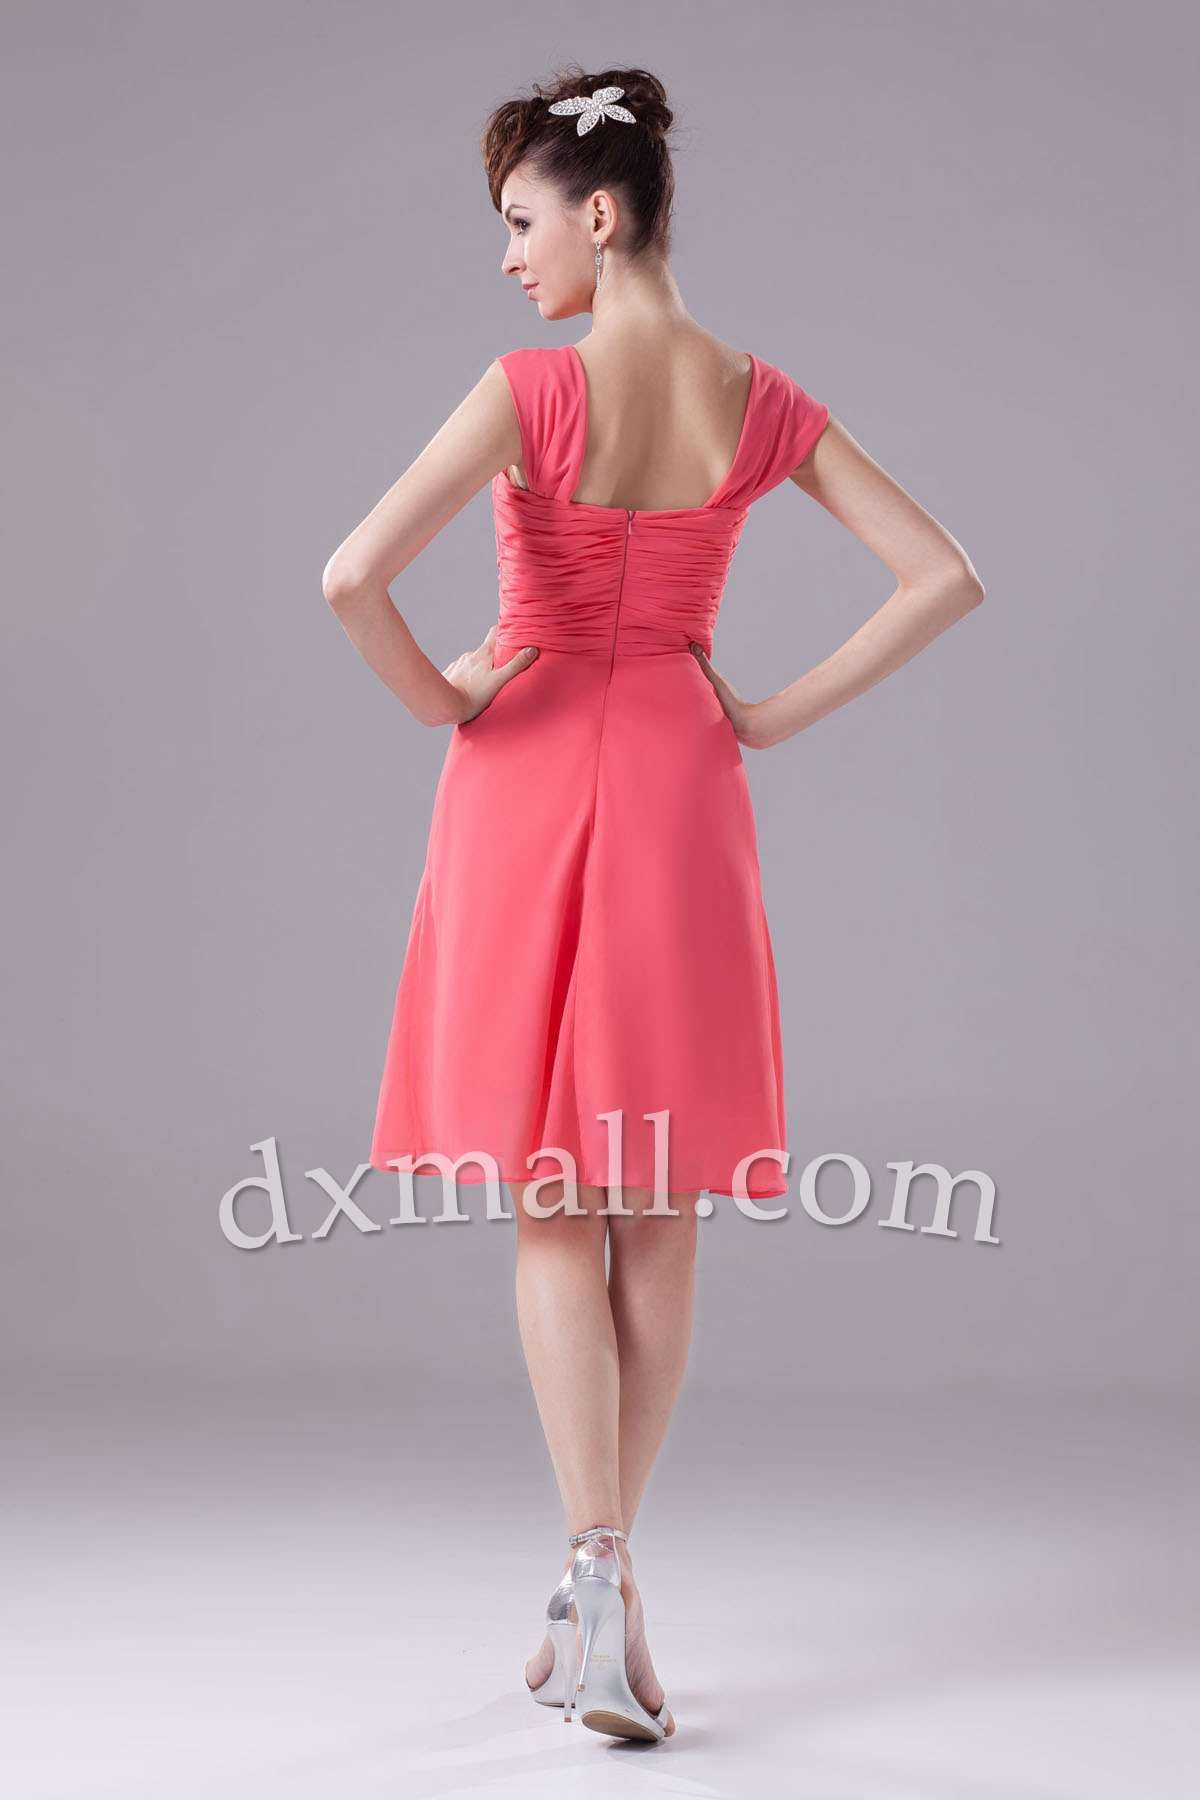 Mid length dresses for wedding guests  Short Wedding Guest Dresses Straps Knee Length Chiffon picture shown